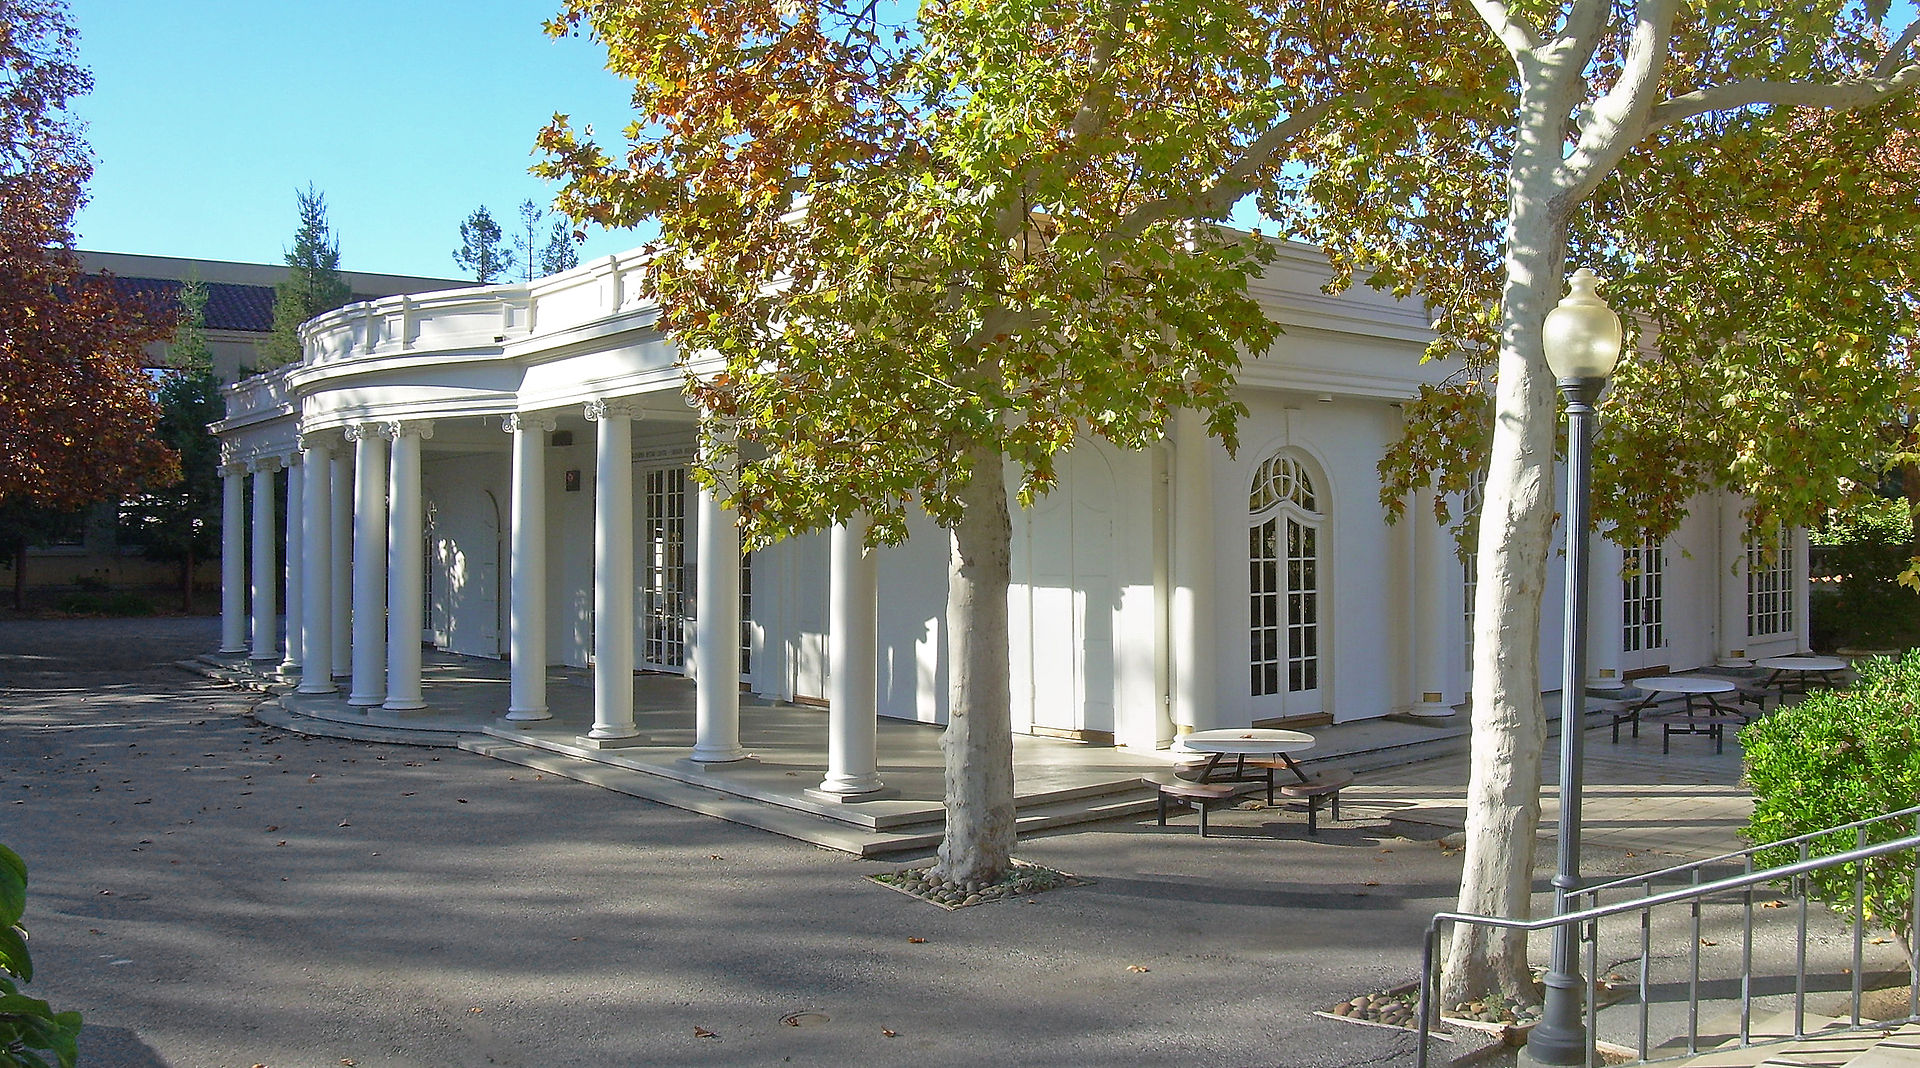 Home to the California History Center, Le Petit Trianon was moved twice from its original location and saved from the wrecking ball during the 1960s.